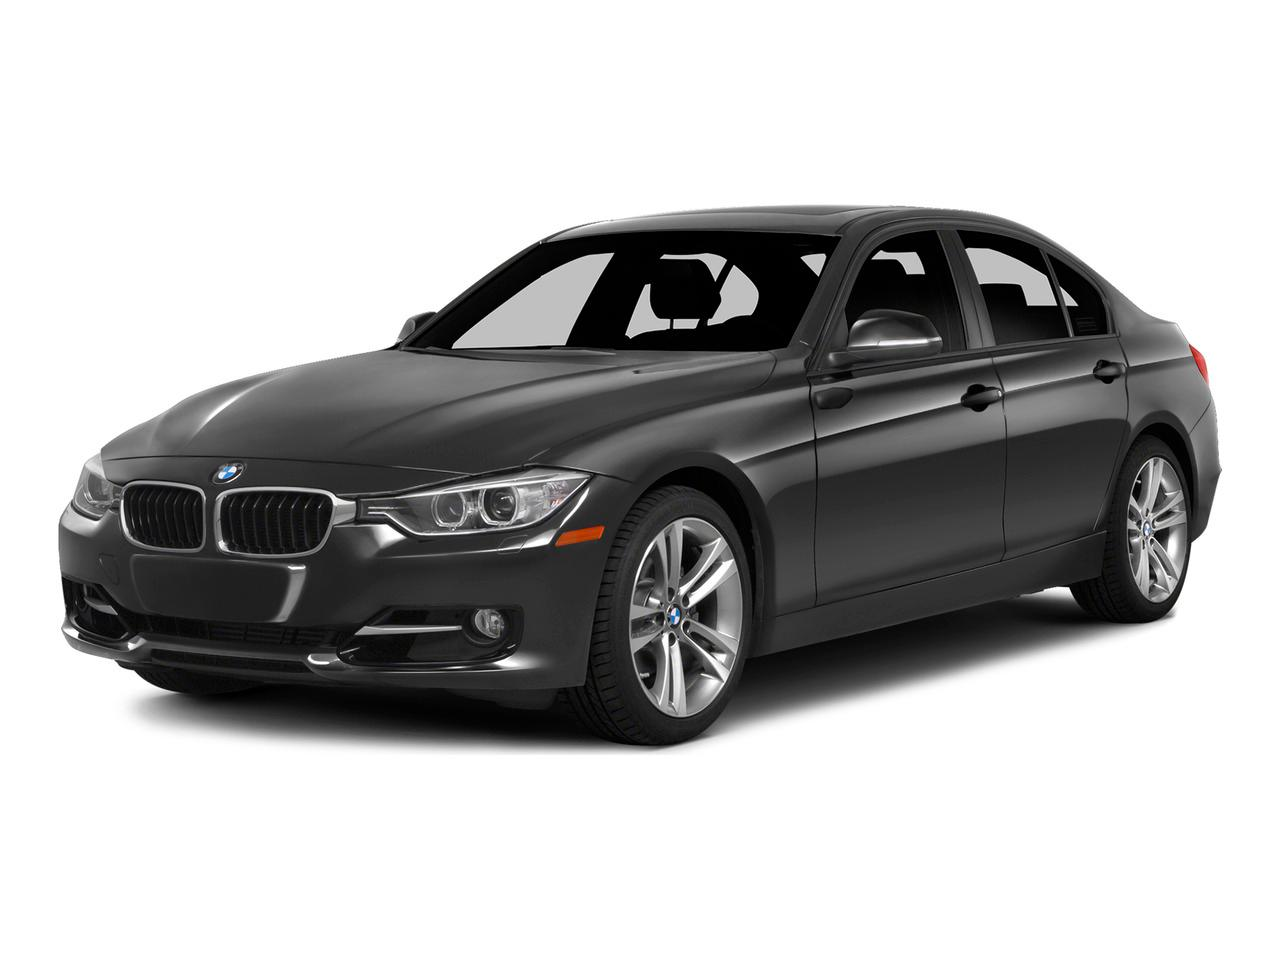 2015 BMW 328i xDrive Vehicle Photo in Moon Township, PA 15108